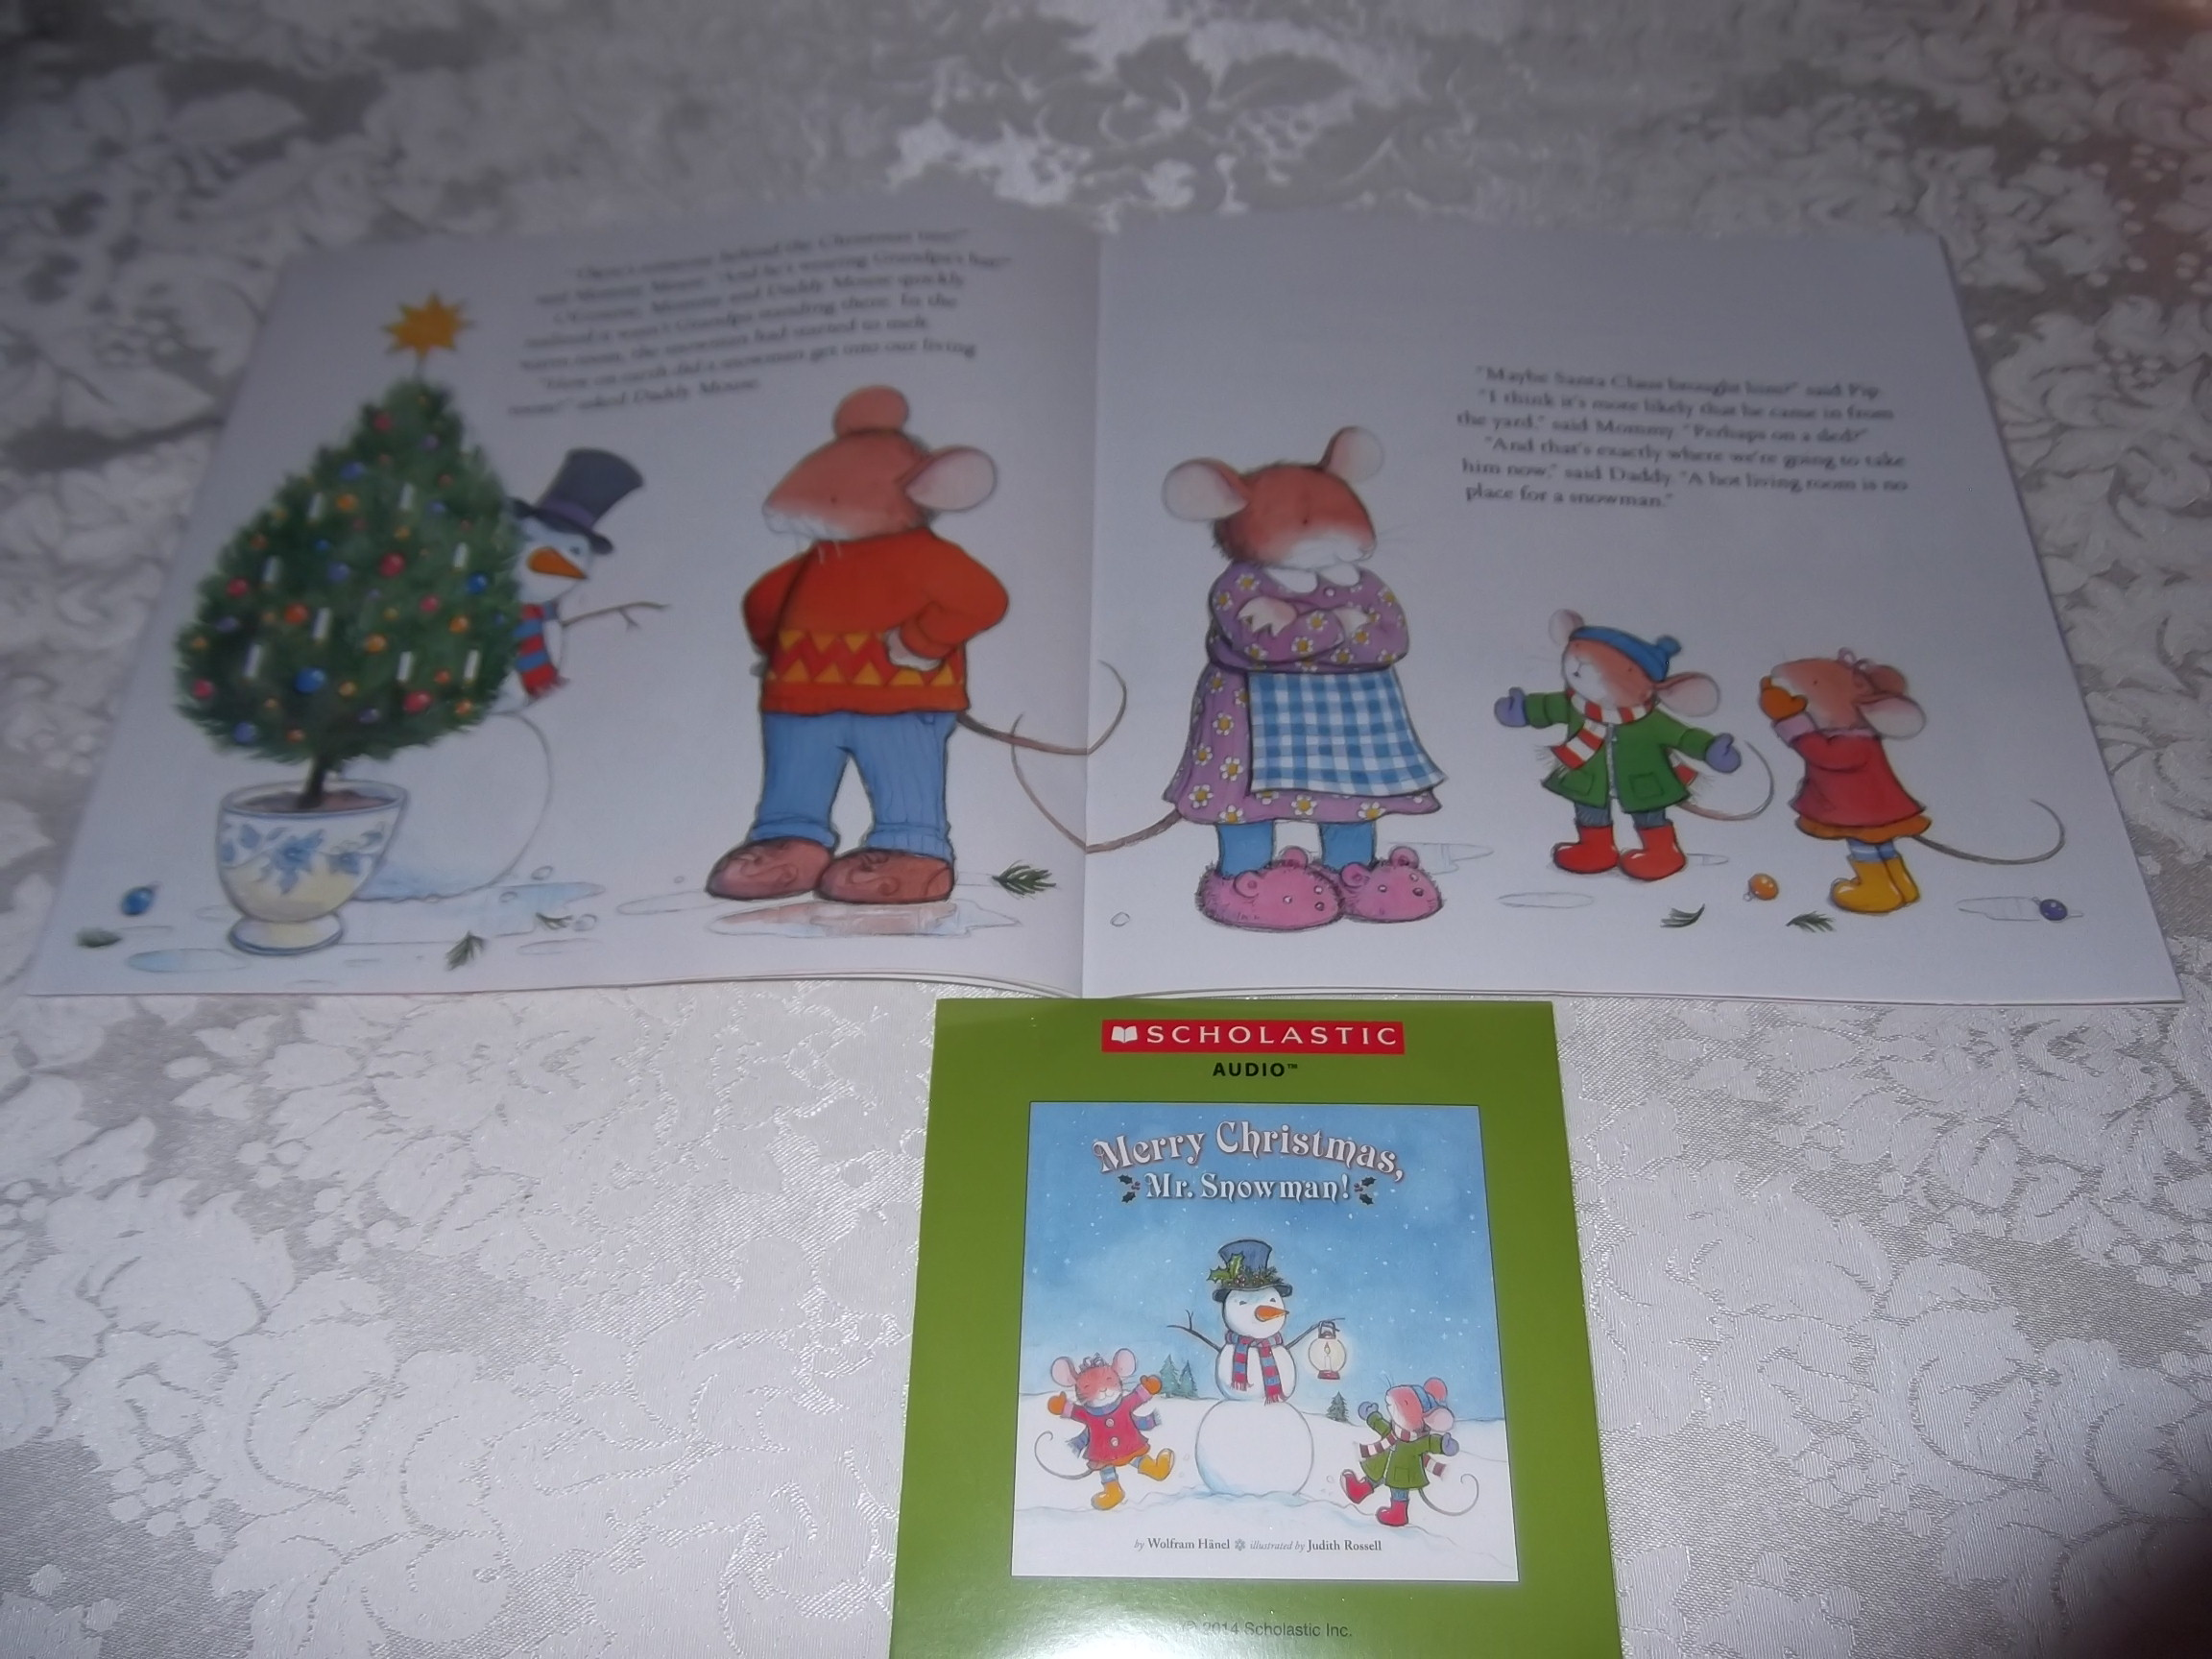 Image 5 of Merry Christmas, Mr. Snowman! Wolfram Hanel Audio CD and SC Brand New